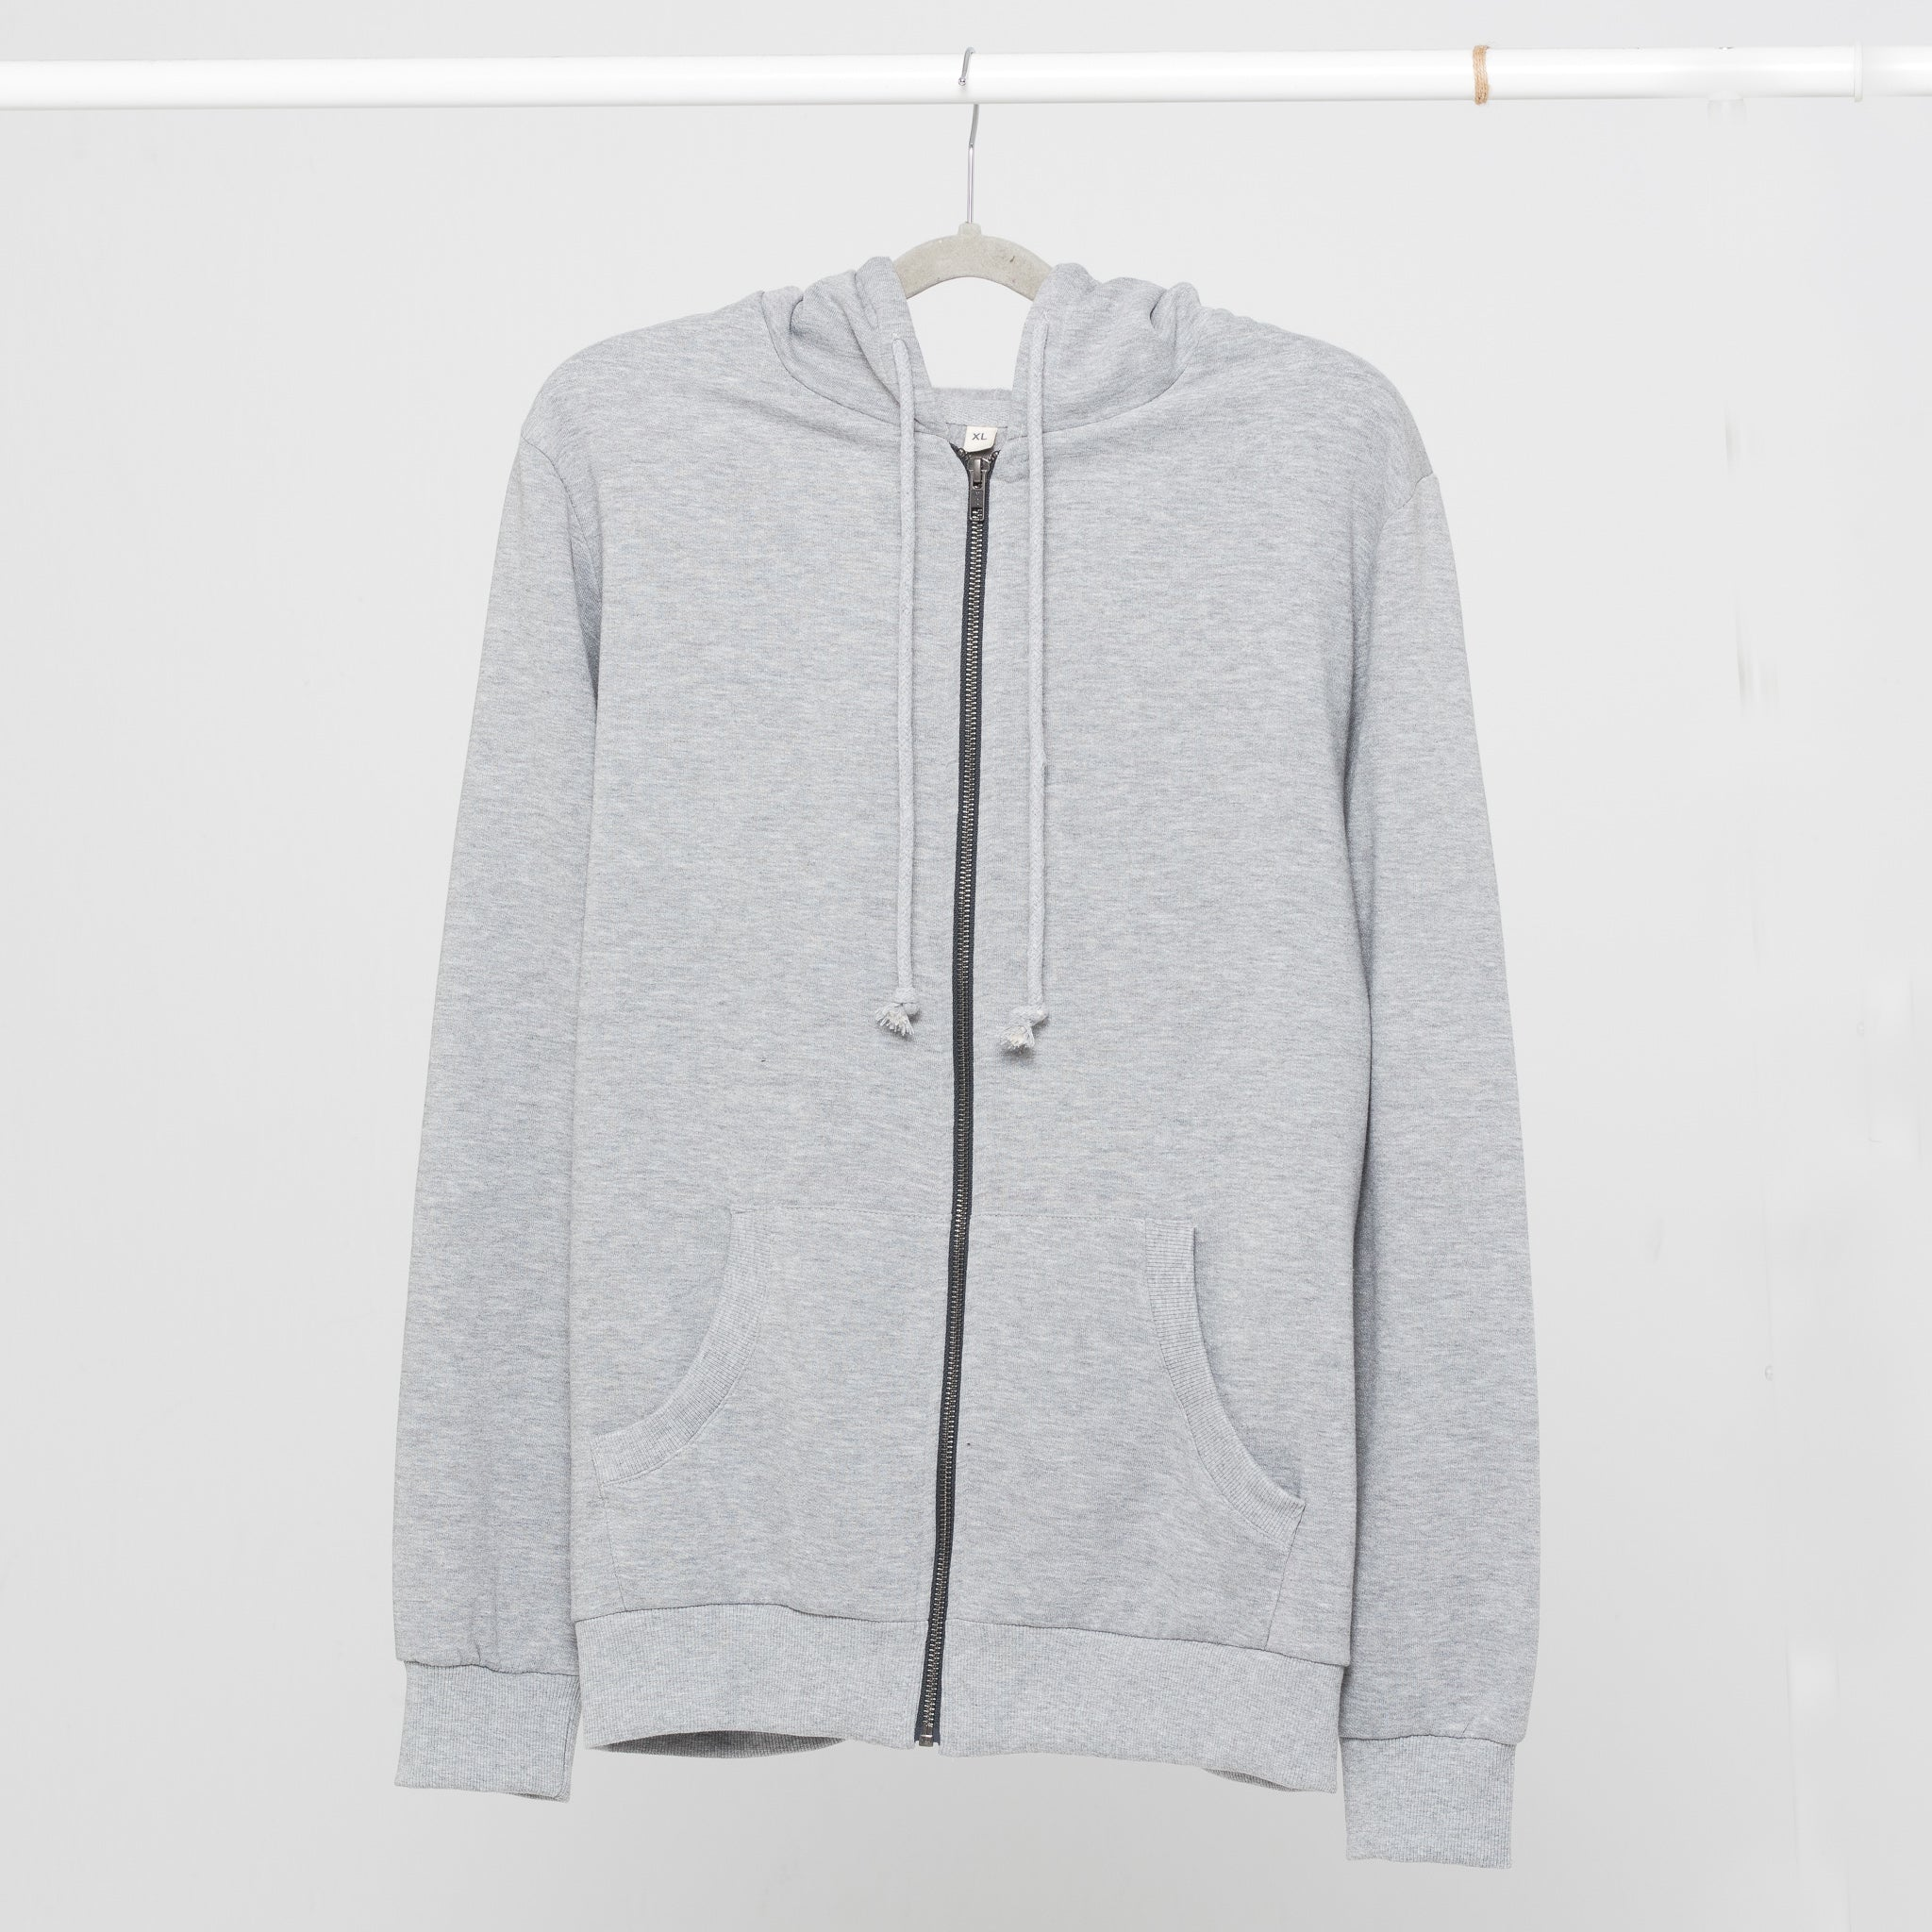 The Mond Women's Hoodie - MONS BONS